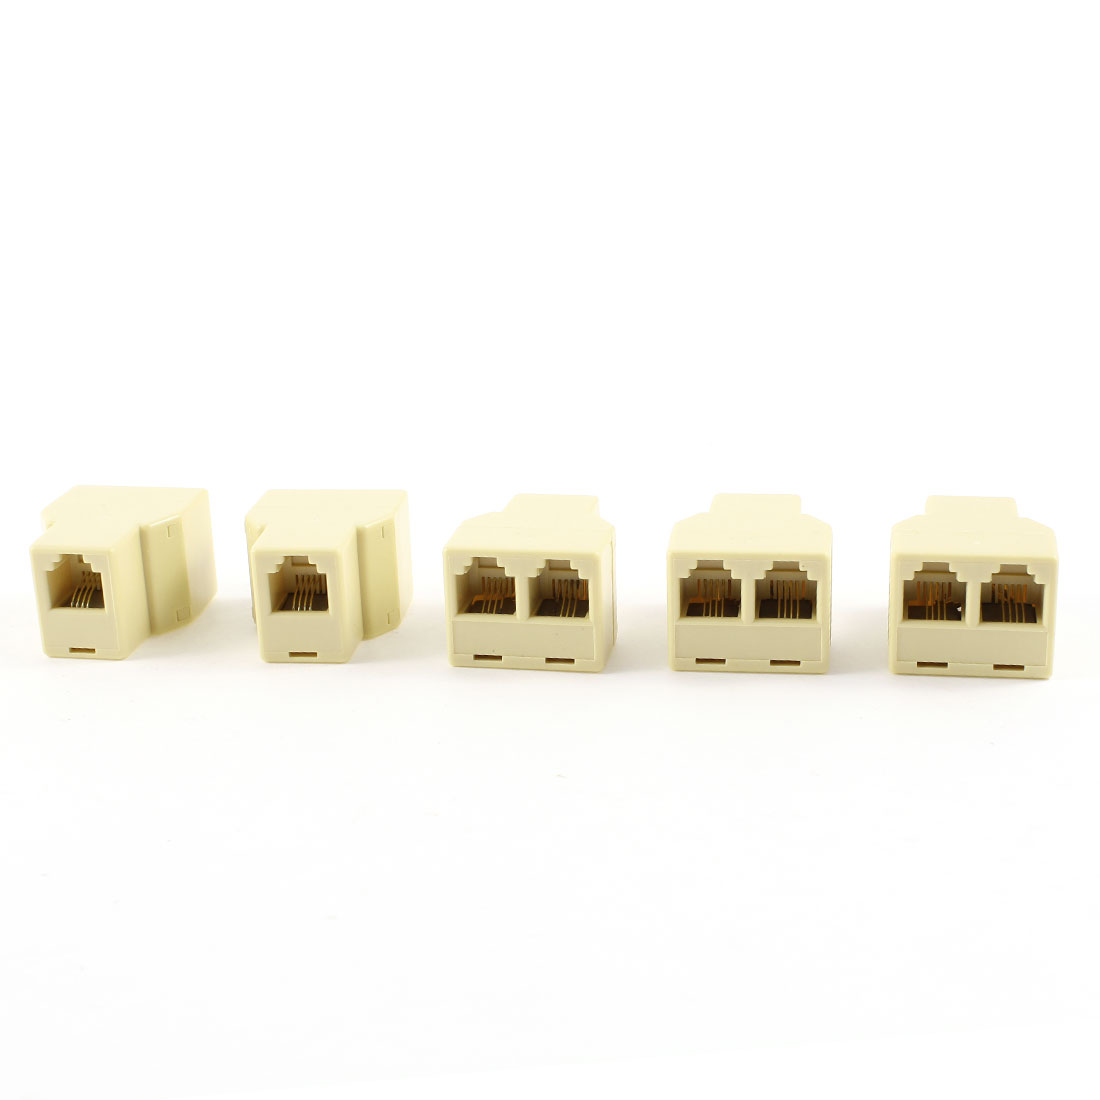 5 Pcs Beige Plastic RJ11 6 Position 4 Pins F-2F 3 Ports Telephone Connectors